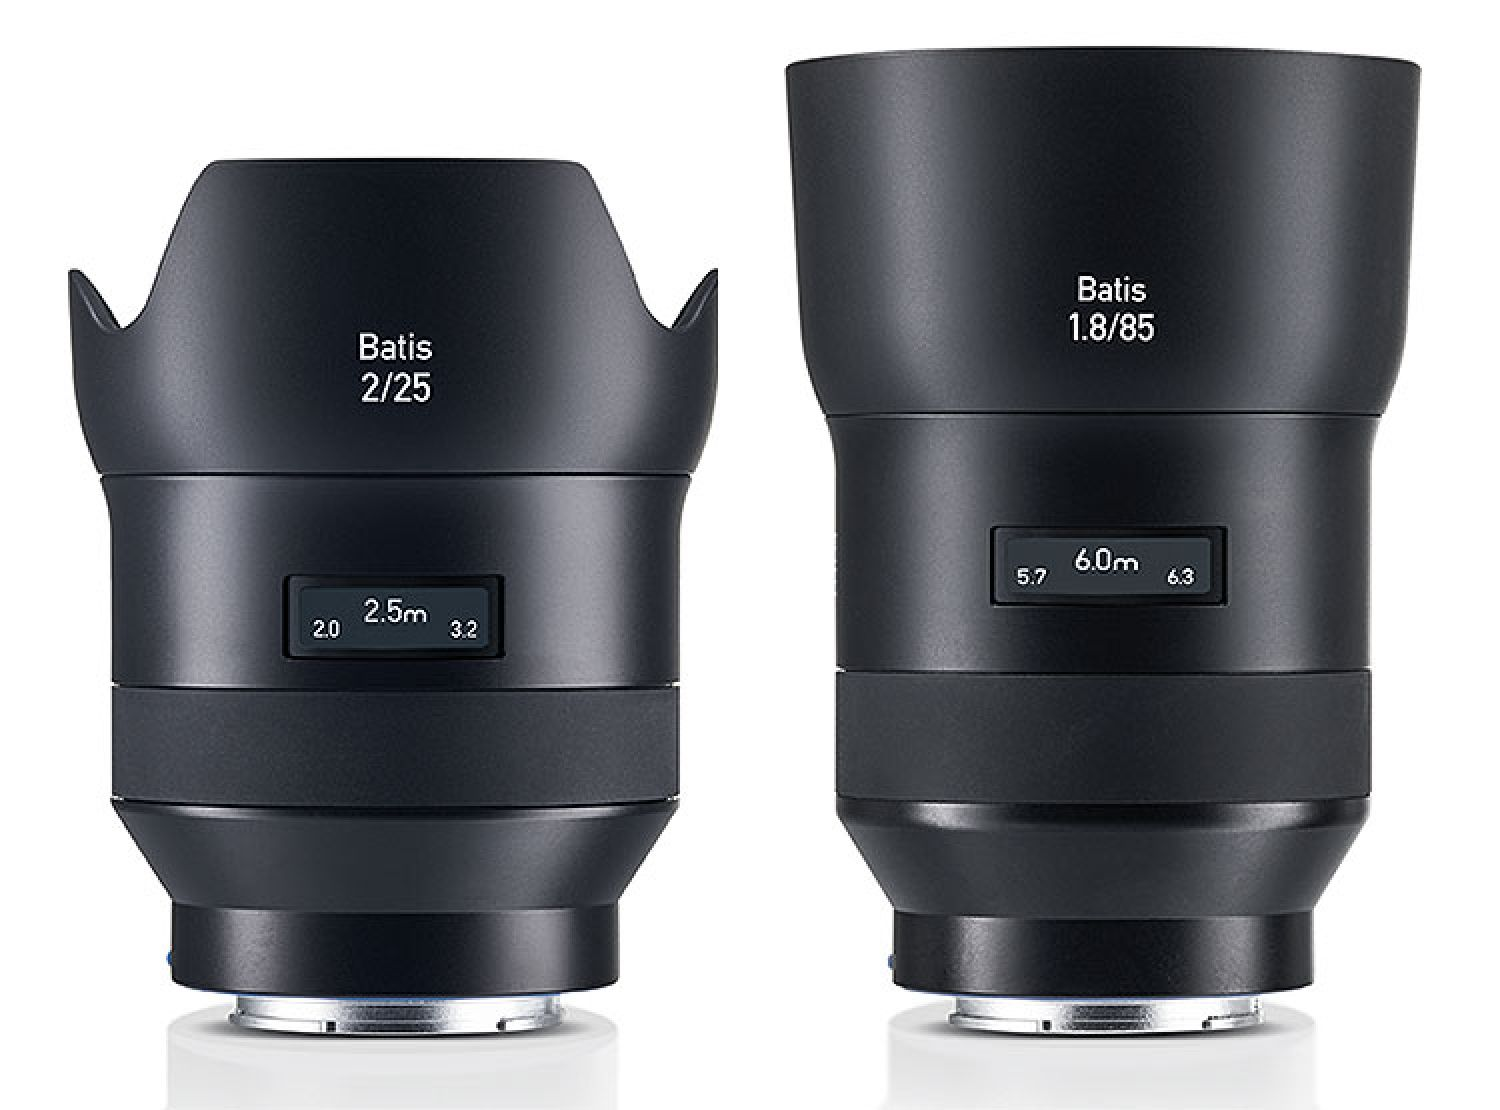 Zeiss Batis Lenses Arrive